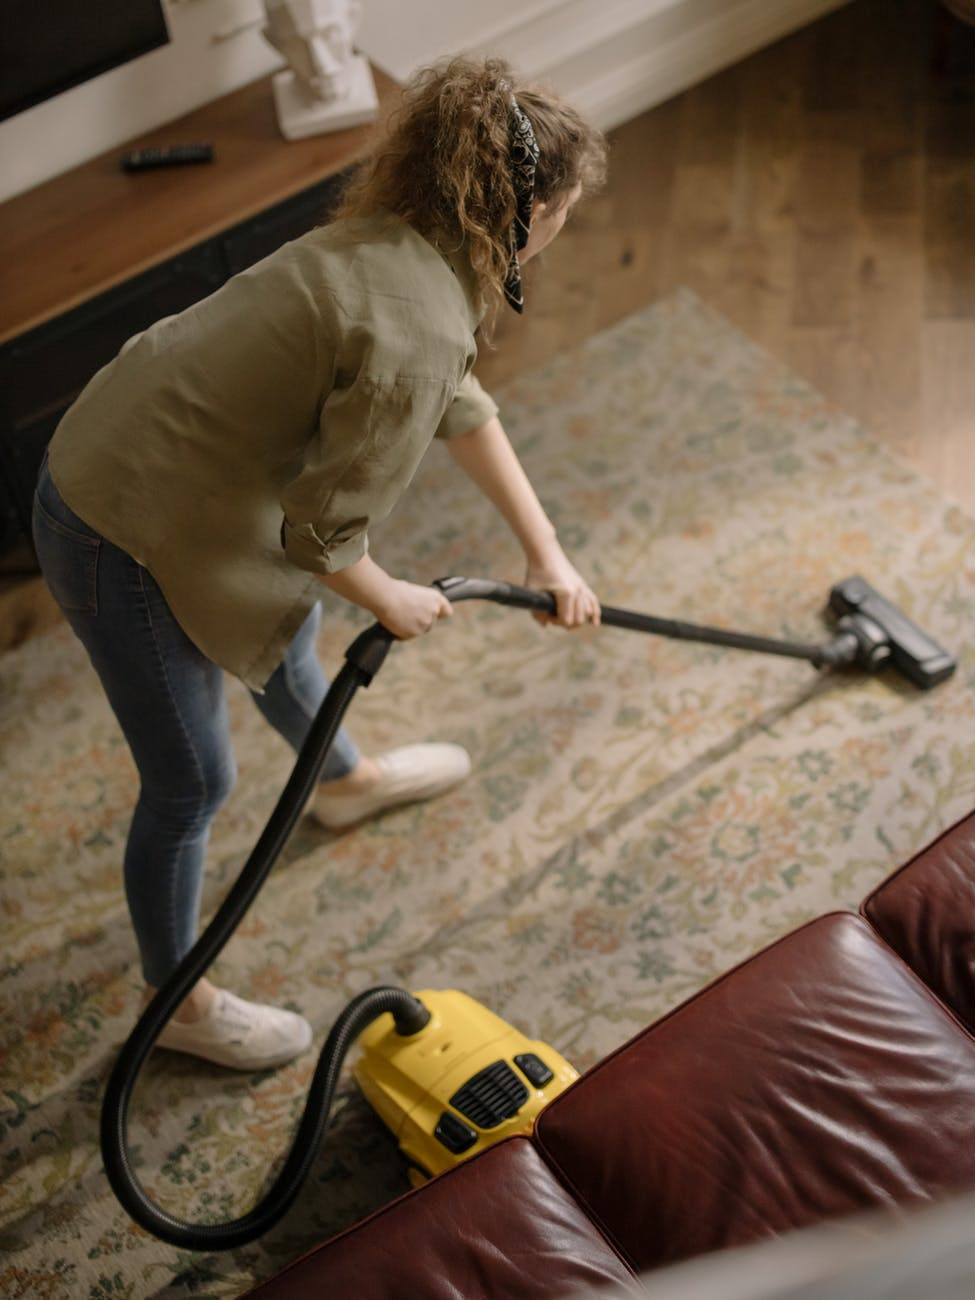 Will steam cleaning kill bed bugs?